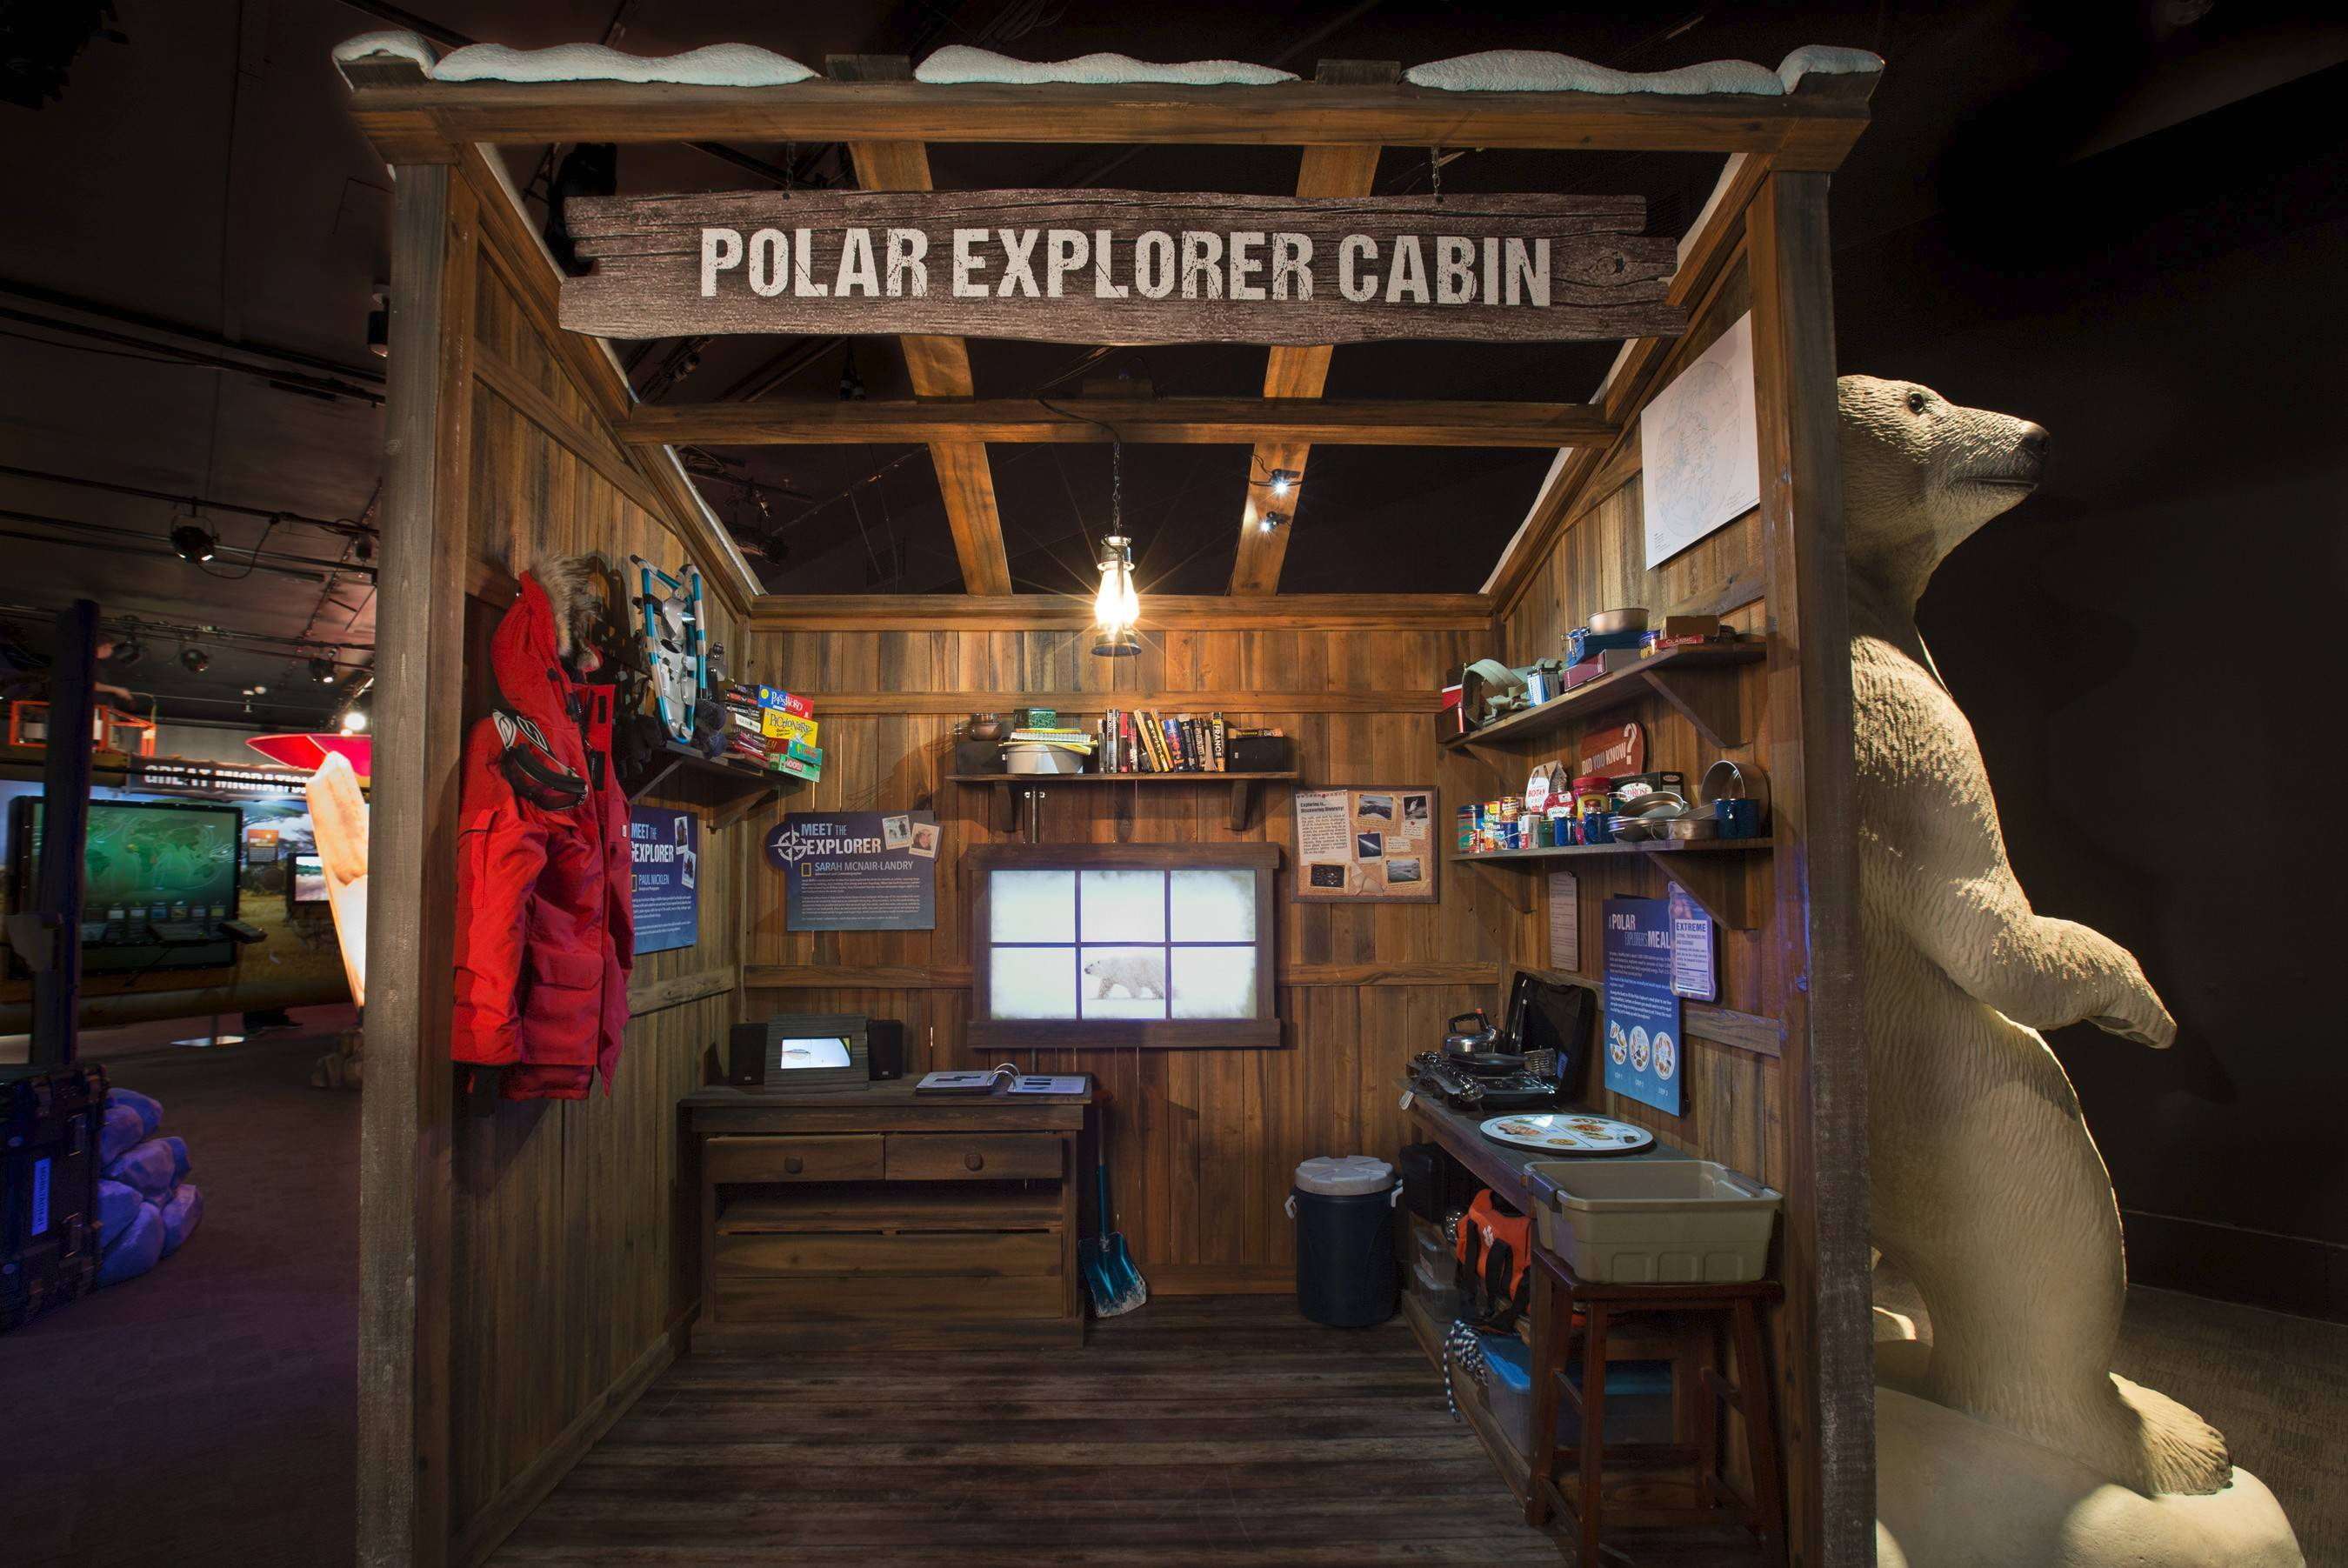 """National Geographic Presents: Earth Explorers"" takes museum visitors to remote corners of the globe. An Arctic cabin teaches guests about surviving in brutally cold climates."